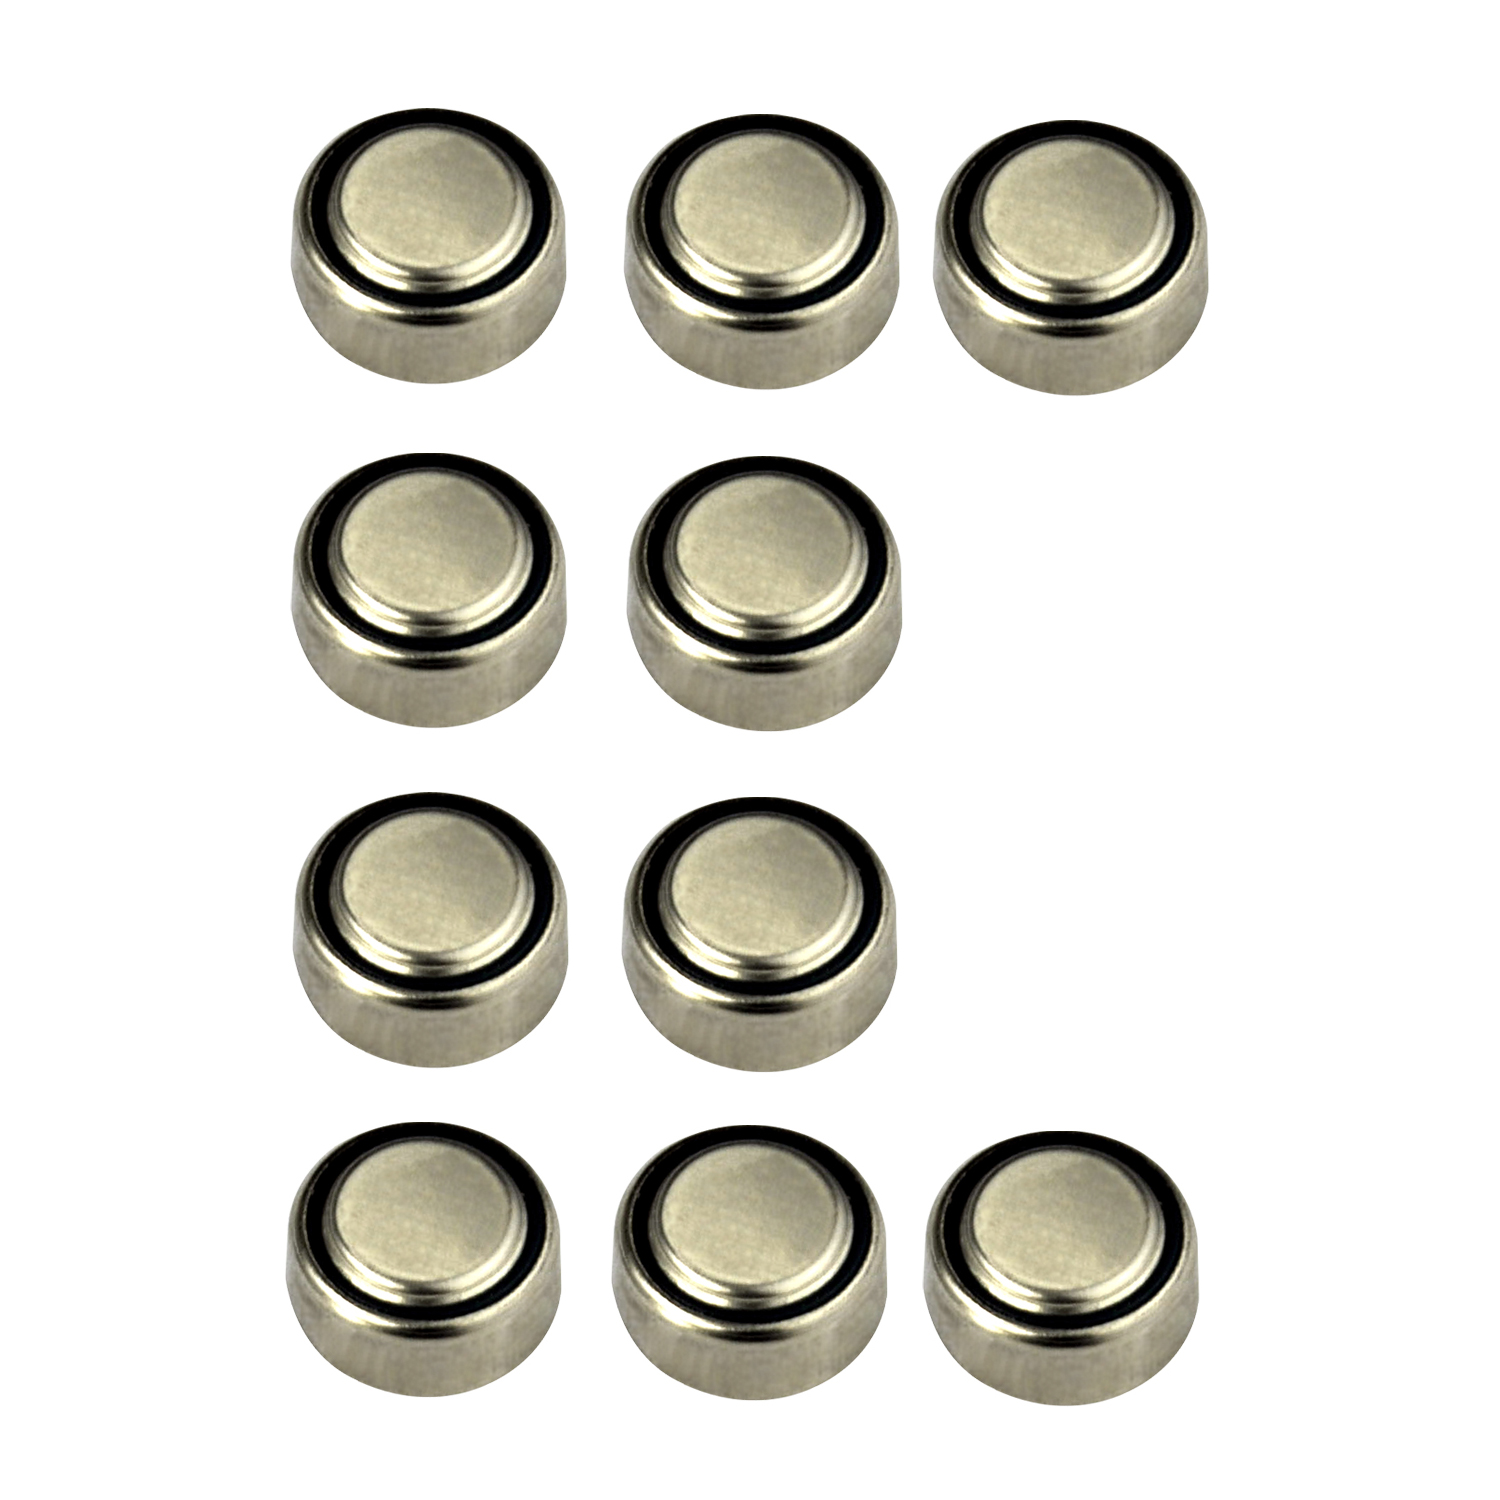 100 x AG13 LR44 SR44 LR1154 357A AWIS05 SR44SW 1.5V Alkaline Button Cell Battery